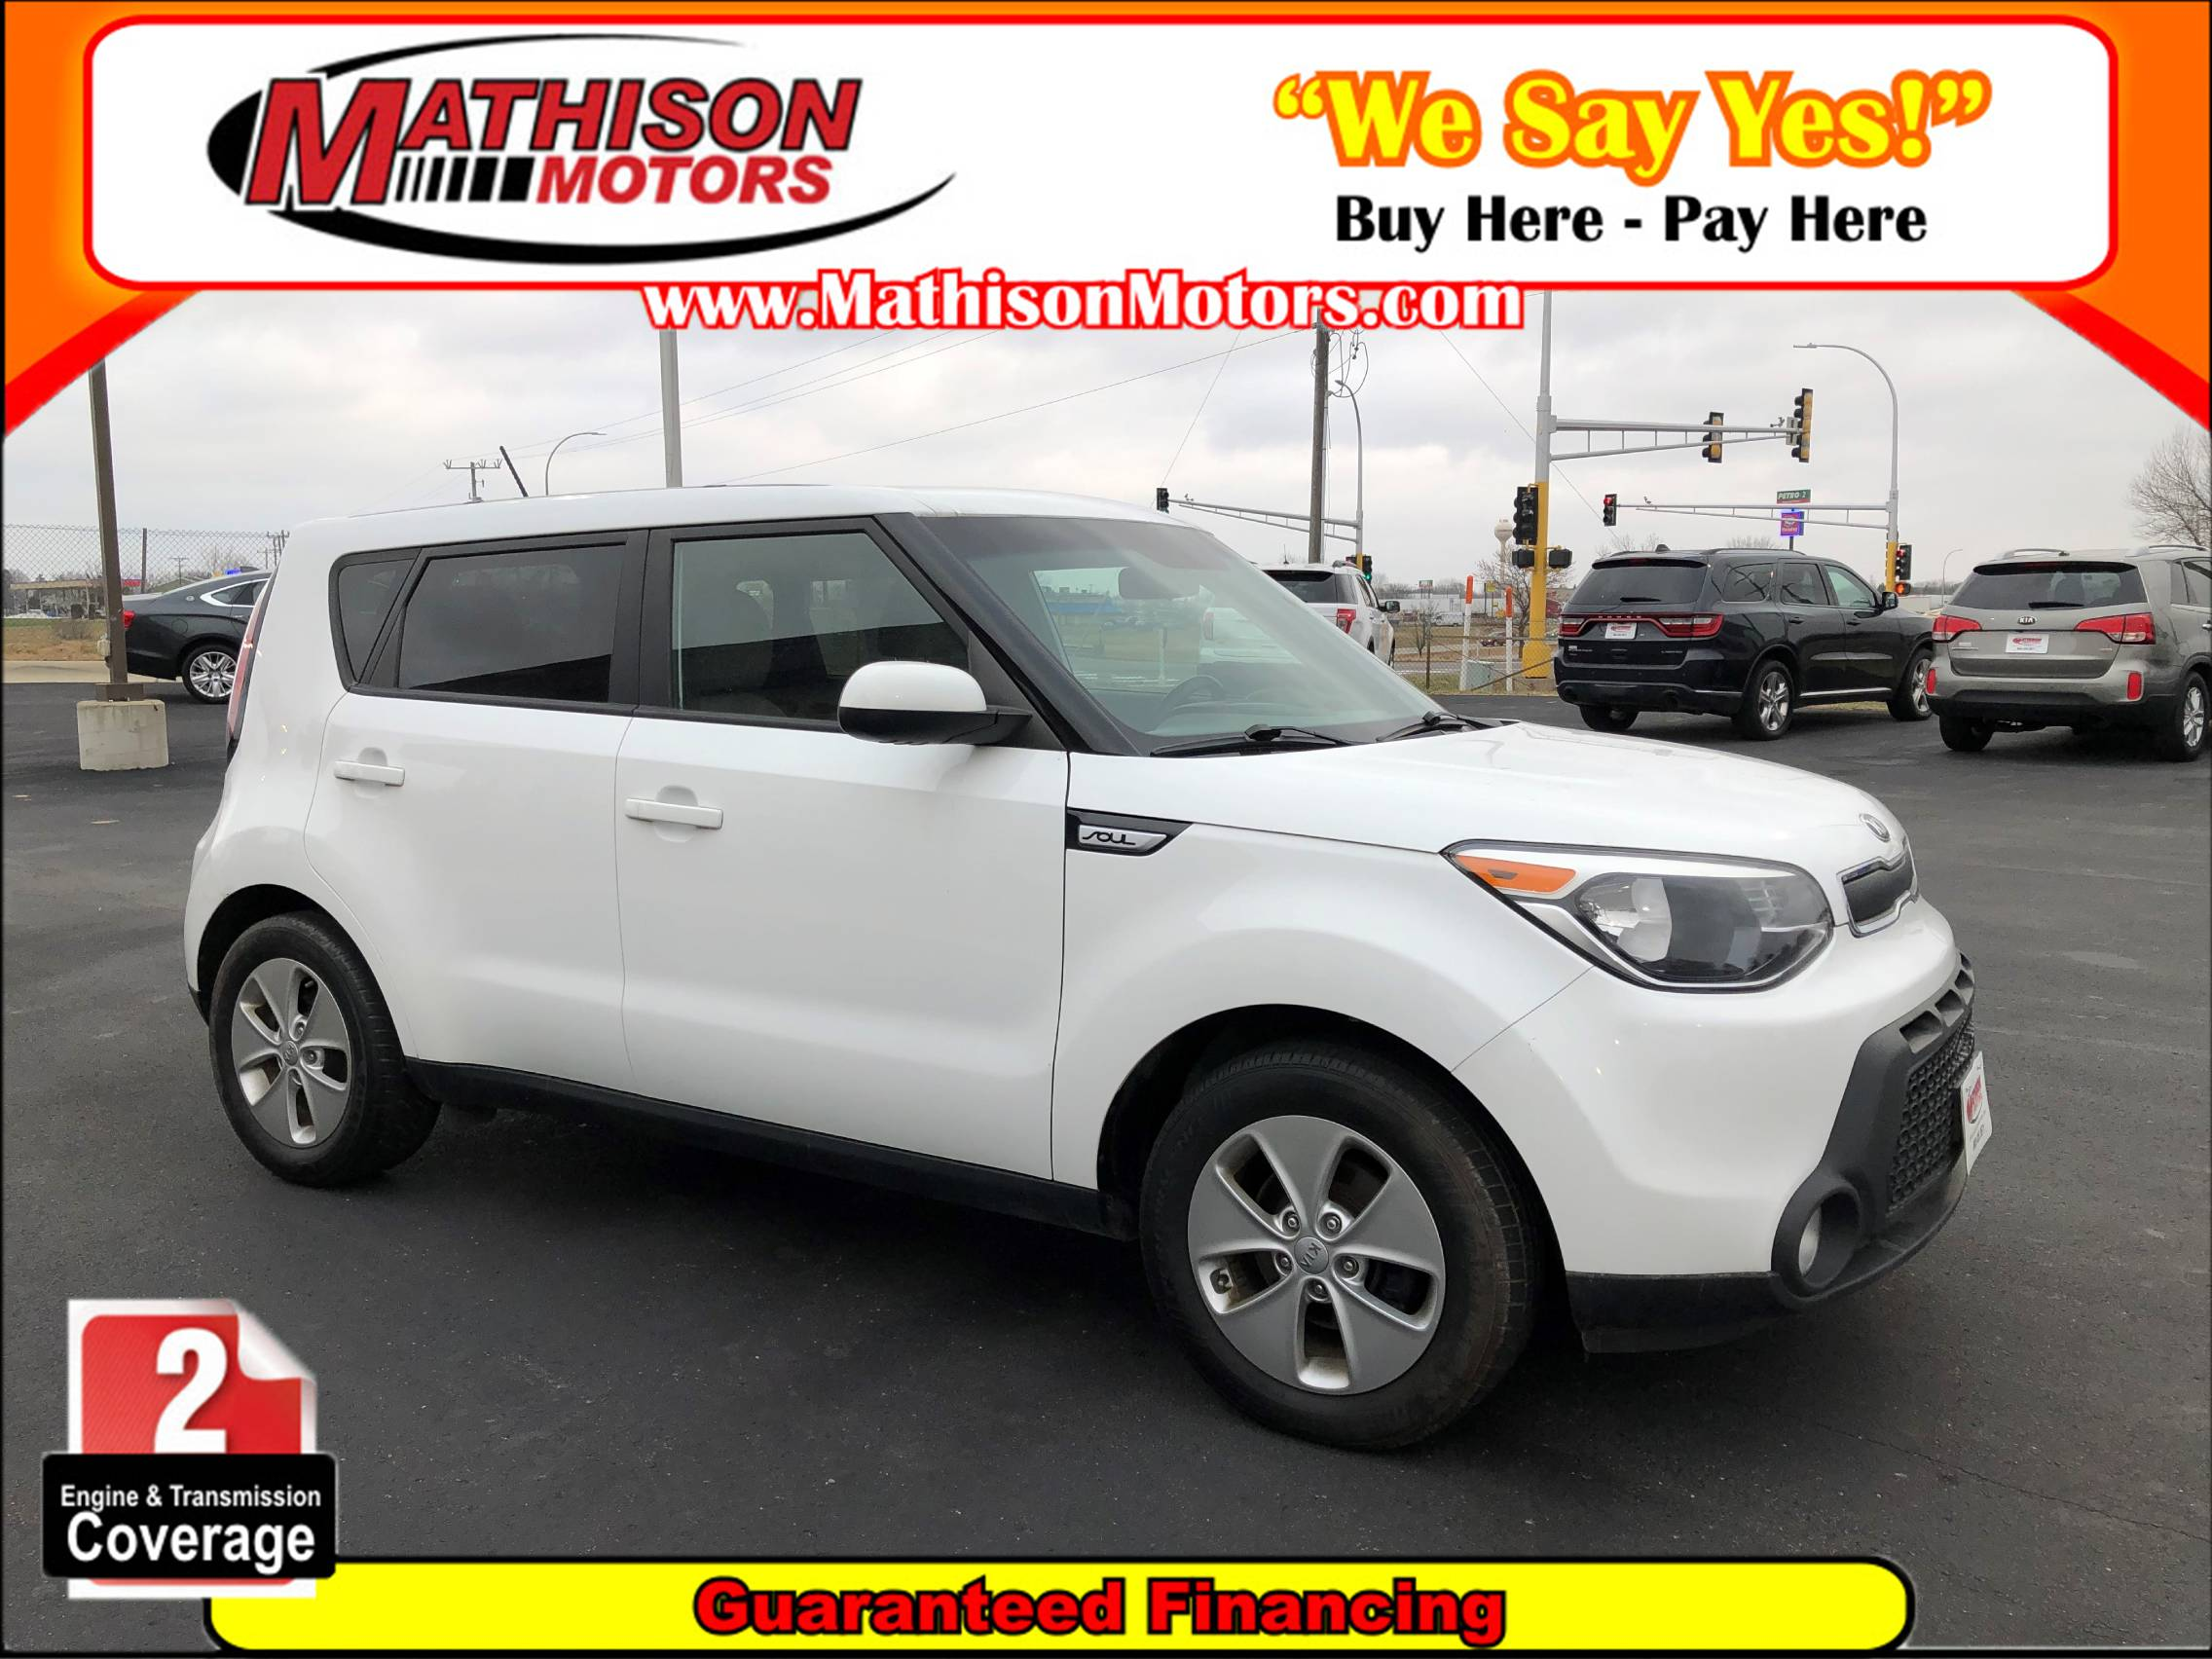 used vehicle - Sedan KIA SOUL 2015